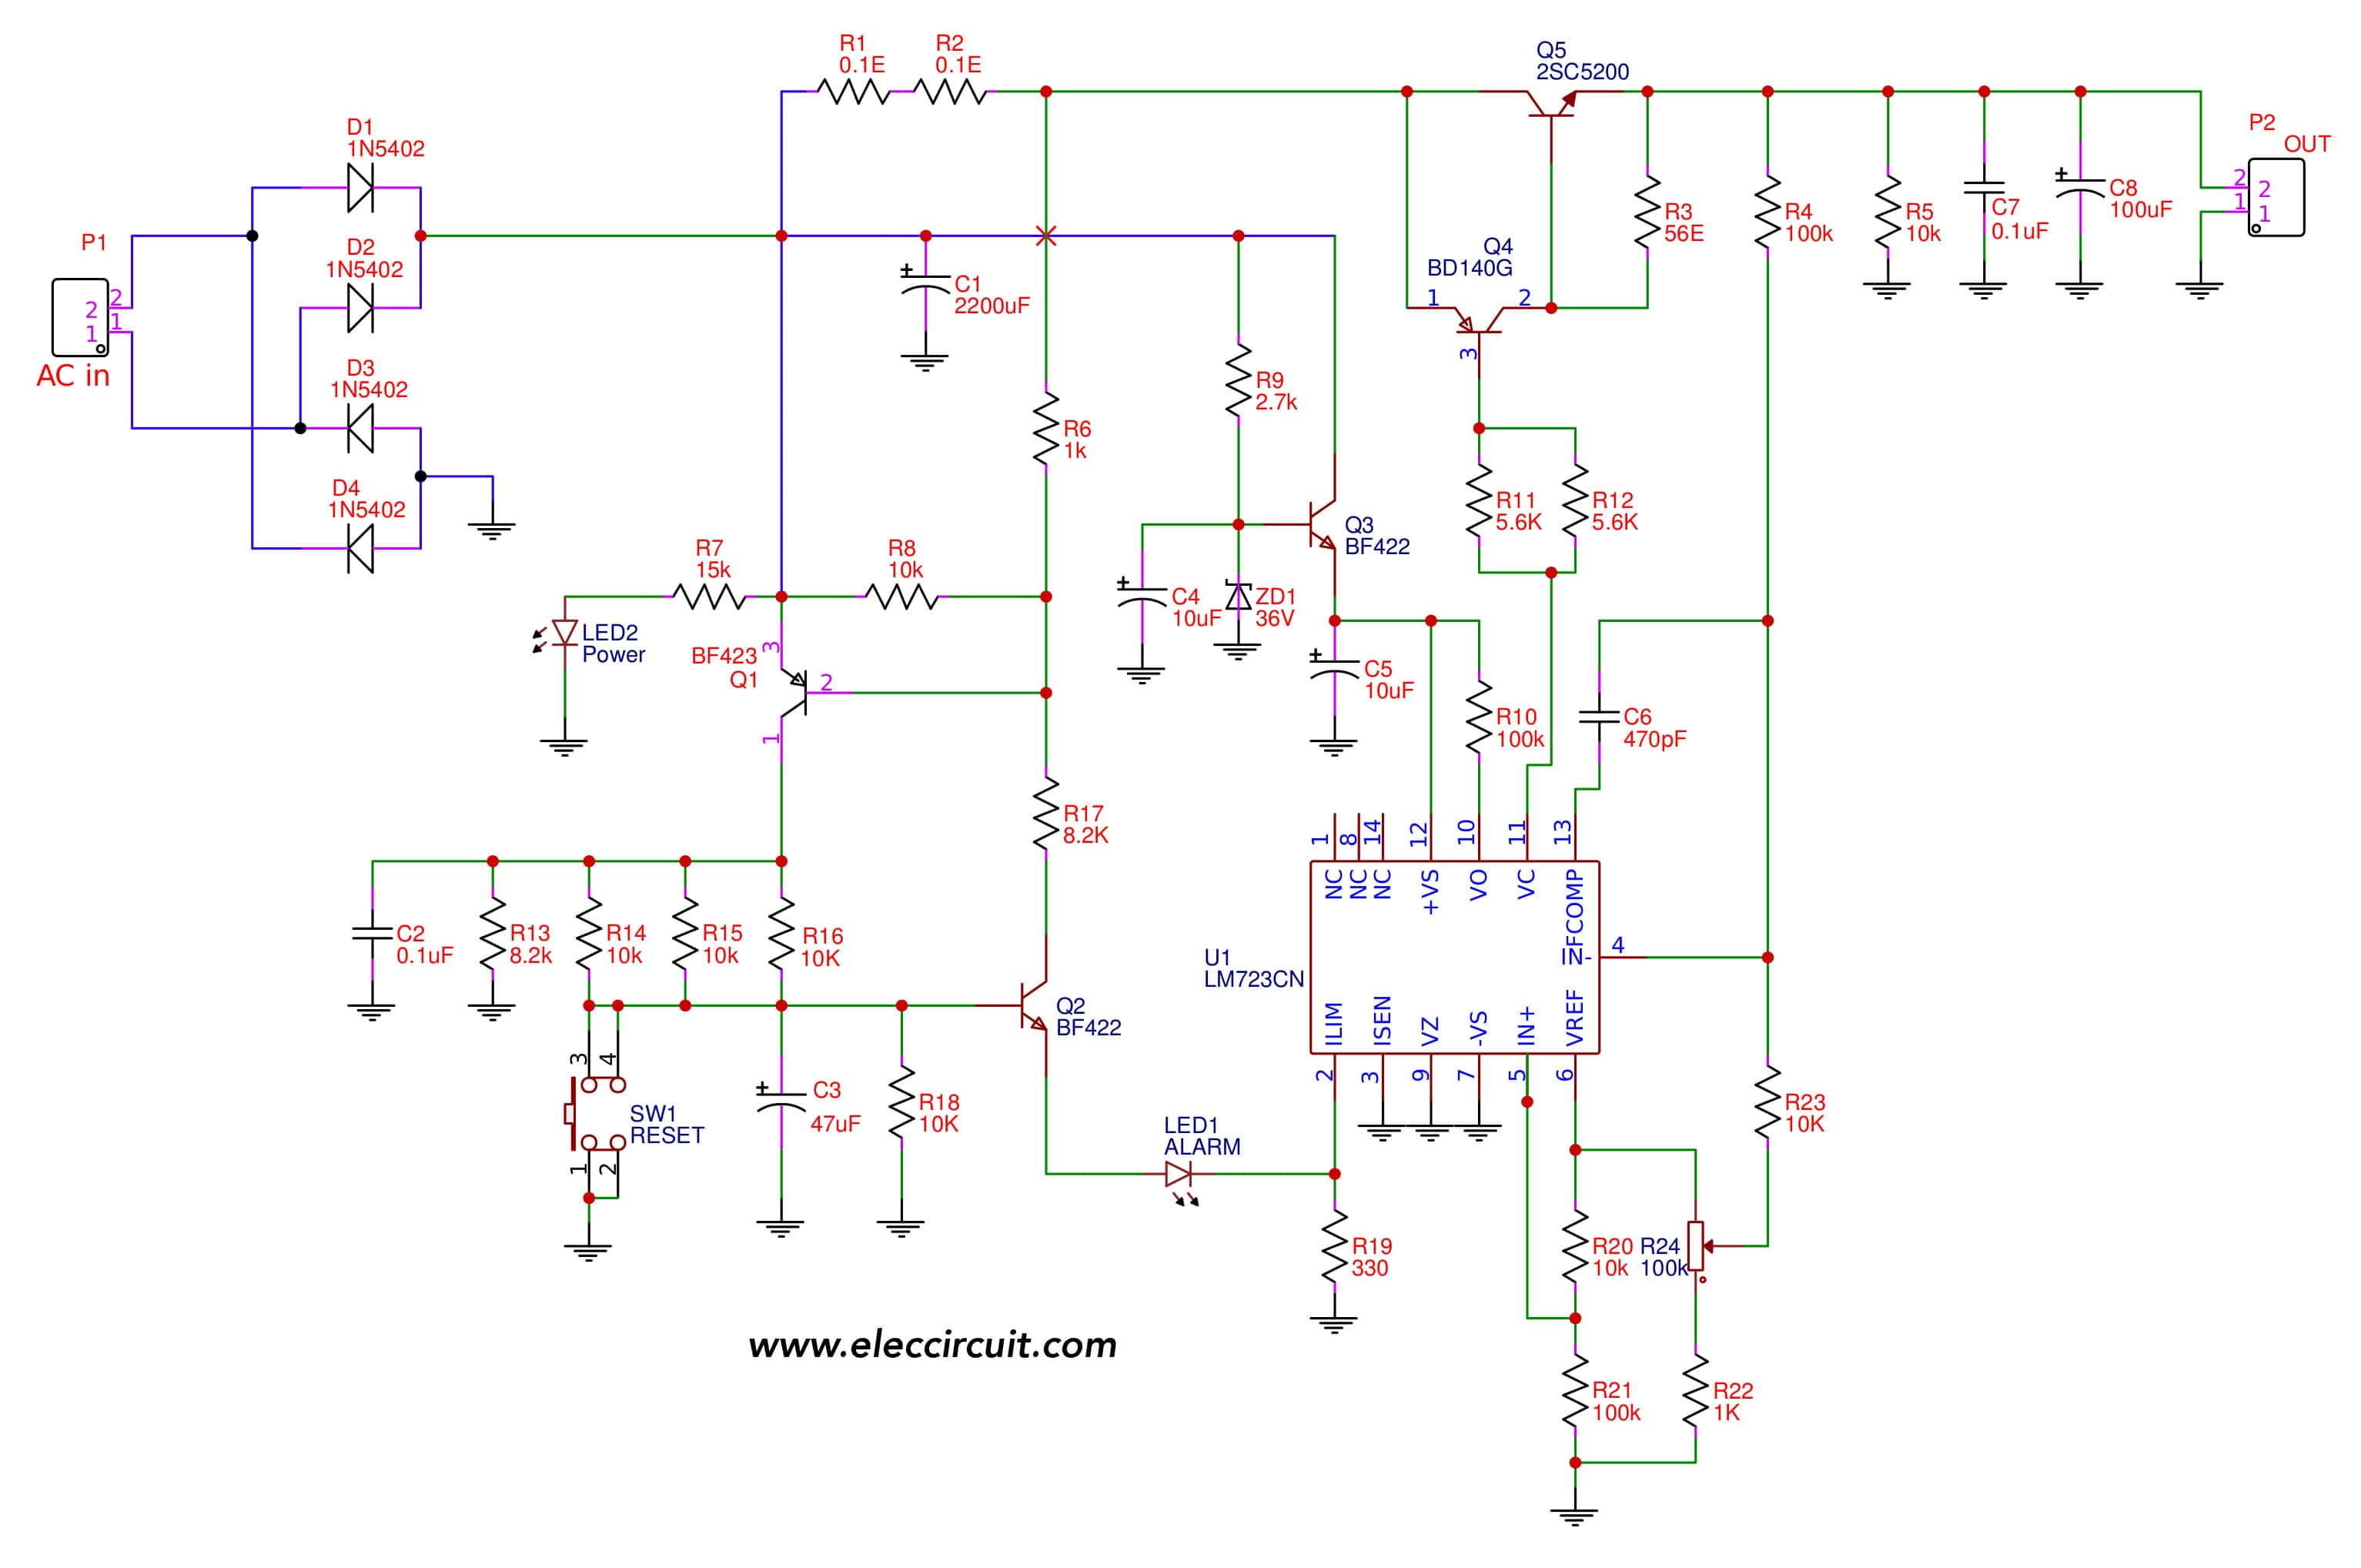 24V 5A Power Supply Circuit Diagram | Variable Power Supply Circuit 0 50v At 3a With Pcb Eleccircuit Com